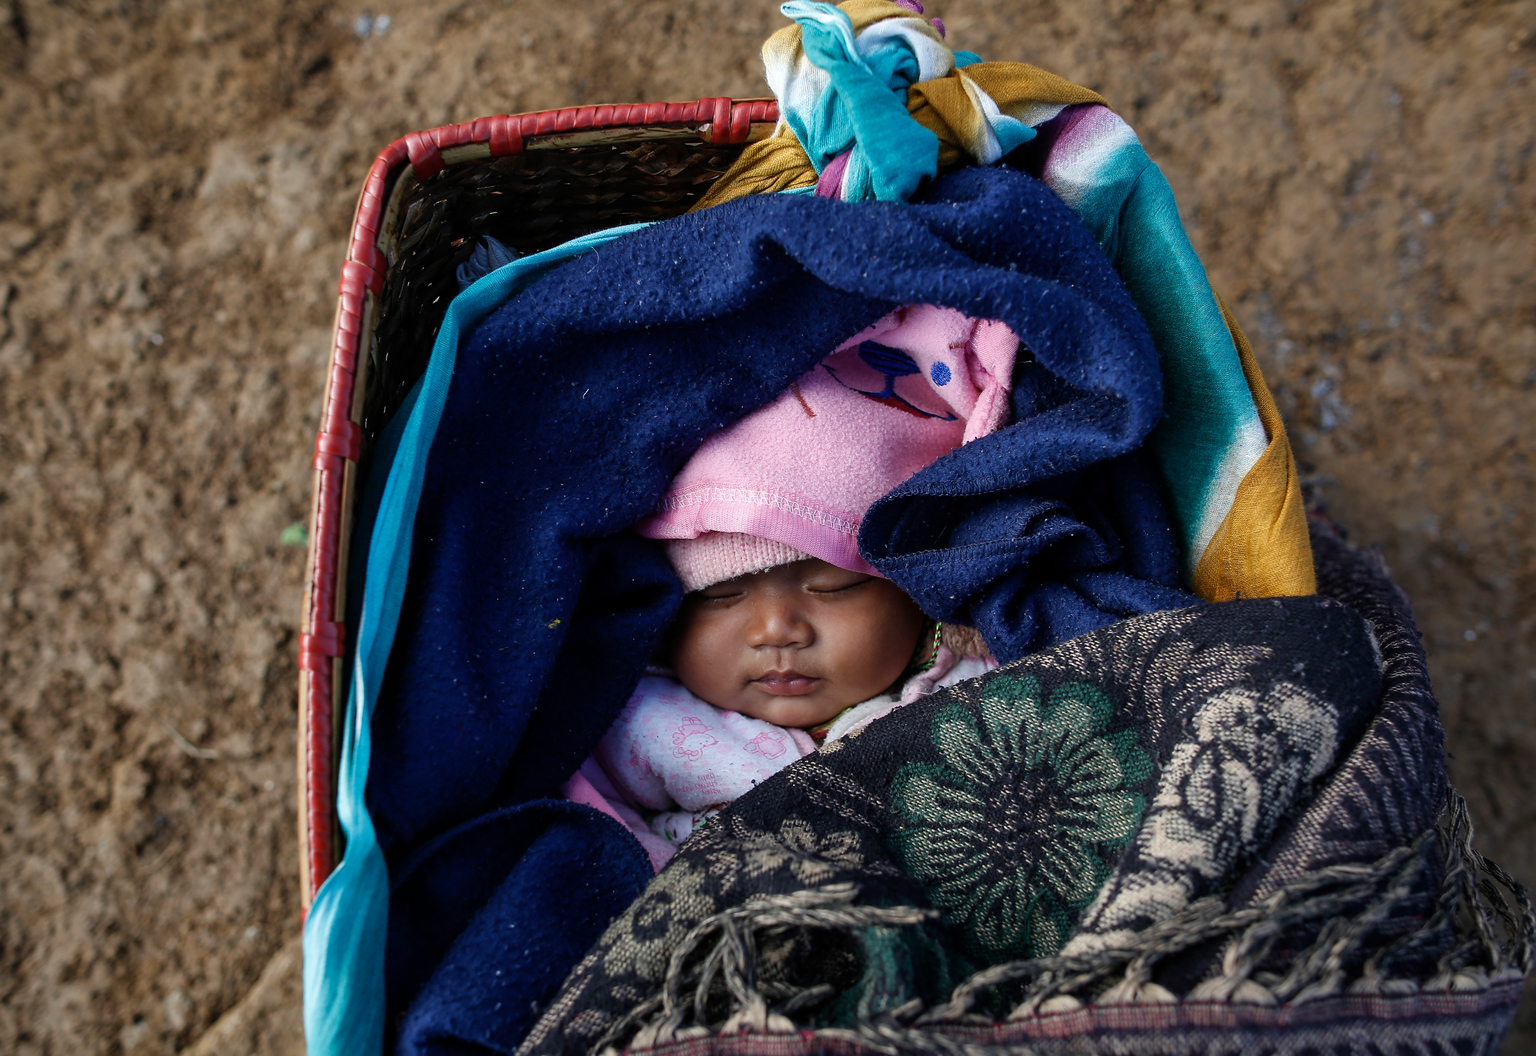 On 17 January 2016, a four month old baby boy born to Nepalese mother Sundari Gurung , aged 22, at her temporary shelter in Gupsi Pakha, in Laprak, in Gorkha district, Nepal. Both Sundari and her farther-in-law lost their homes during April 2015 earthquake and have been living in Earthquake Camp in Gupsipakha. The ongoing winter season and top of snowfall have been affecting her child, says Sundari. Laprak is one of the epicenter villages of Gorkha district, where more than 600 hundreds houses were destroyed during earthquake on 25 April 2015. Hundreds of earthquake victims, particularly the elderly and young children living in shelter of highland altitude have been facing a harsh winter season after snowfall.